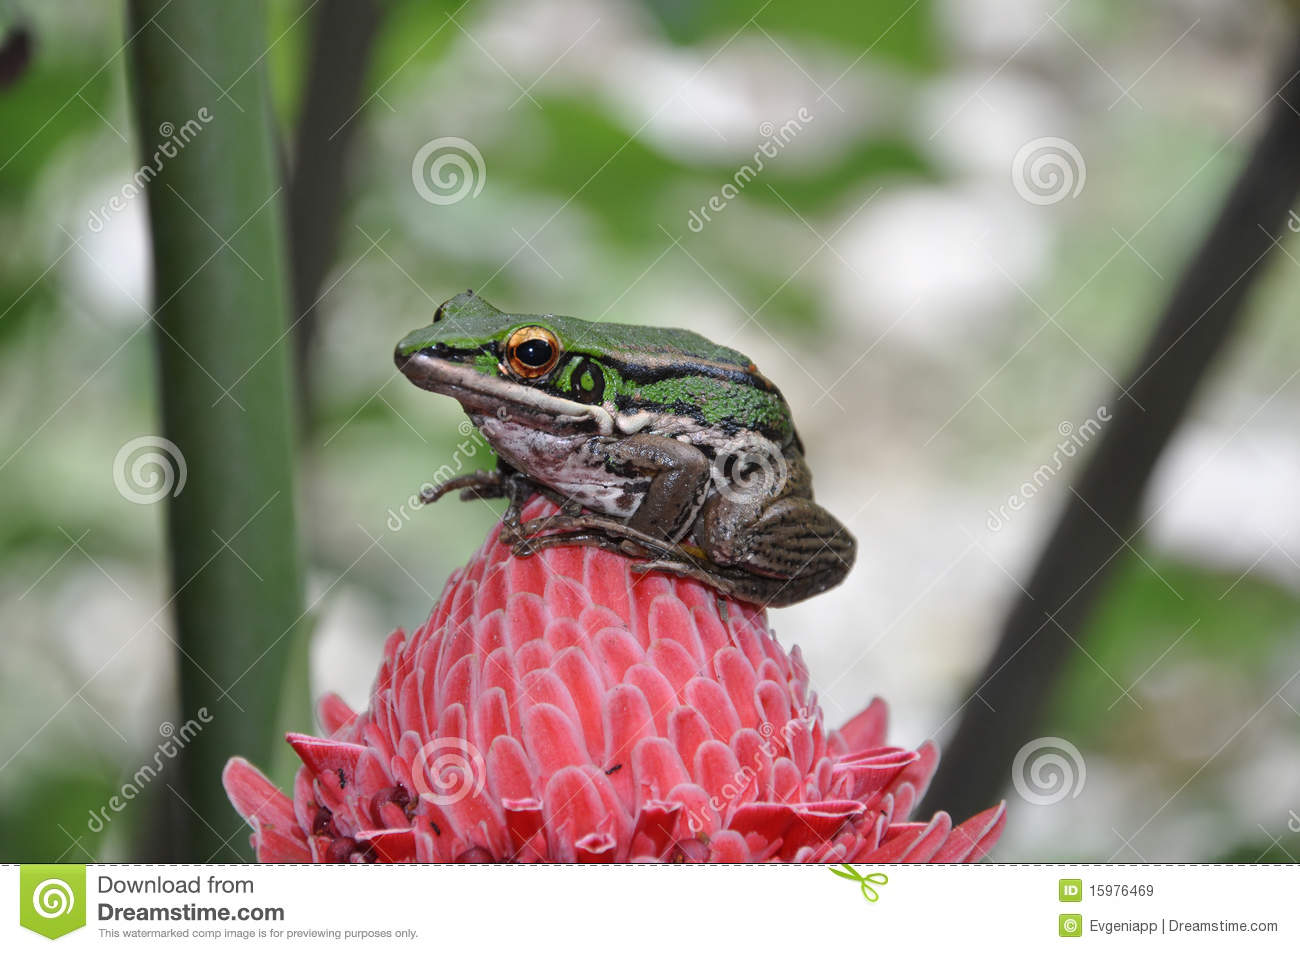 Frog sitting on a Pink Flower